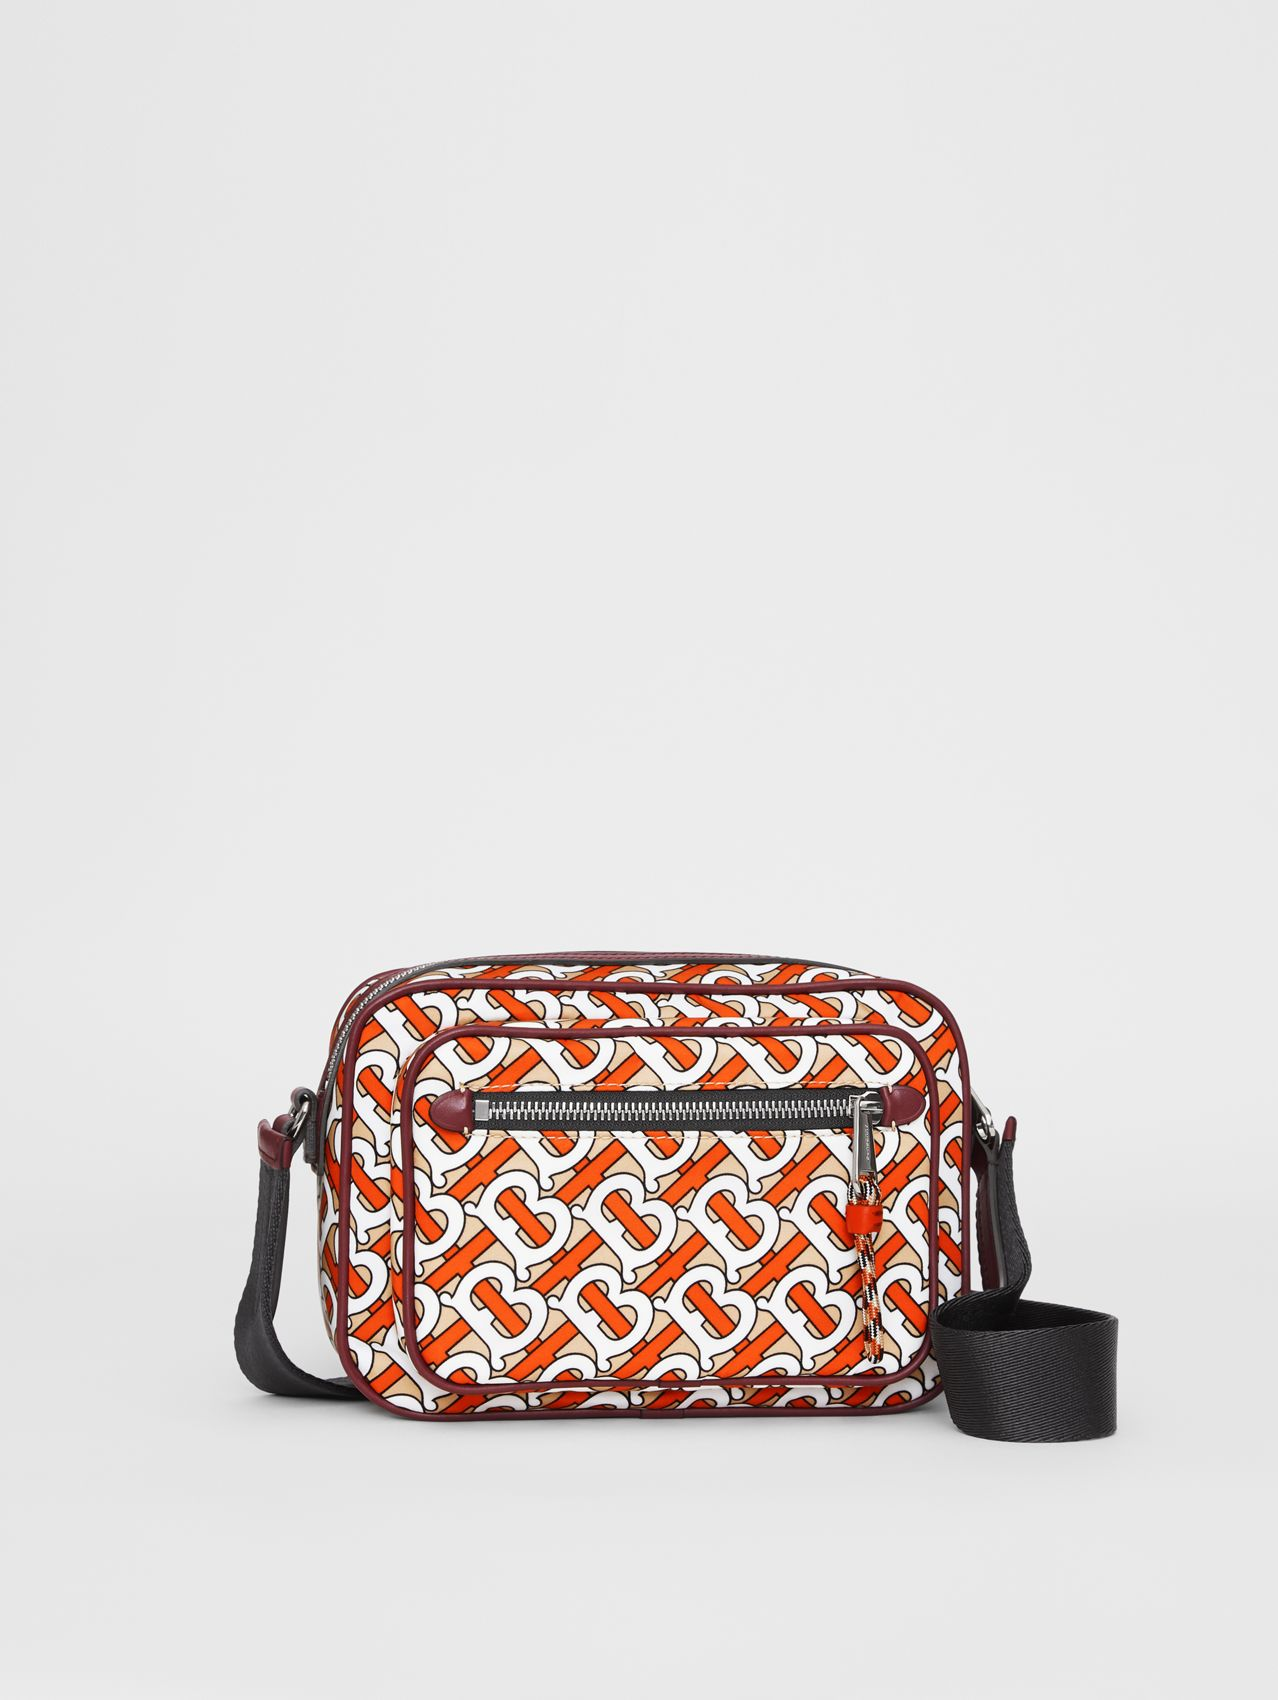 Monogram Print and Leather Crossbody Bag (Vermilion)